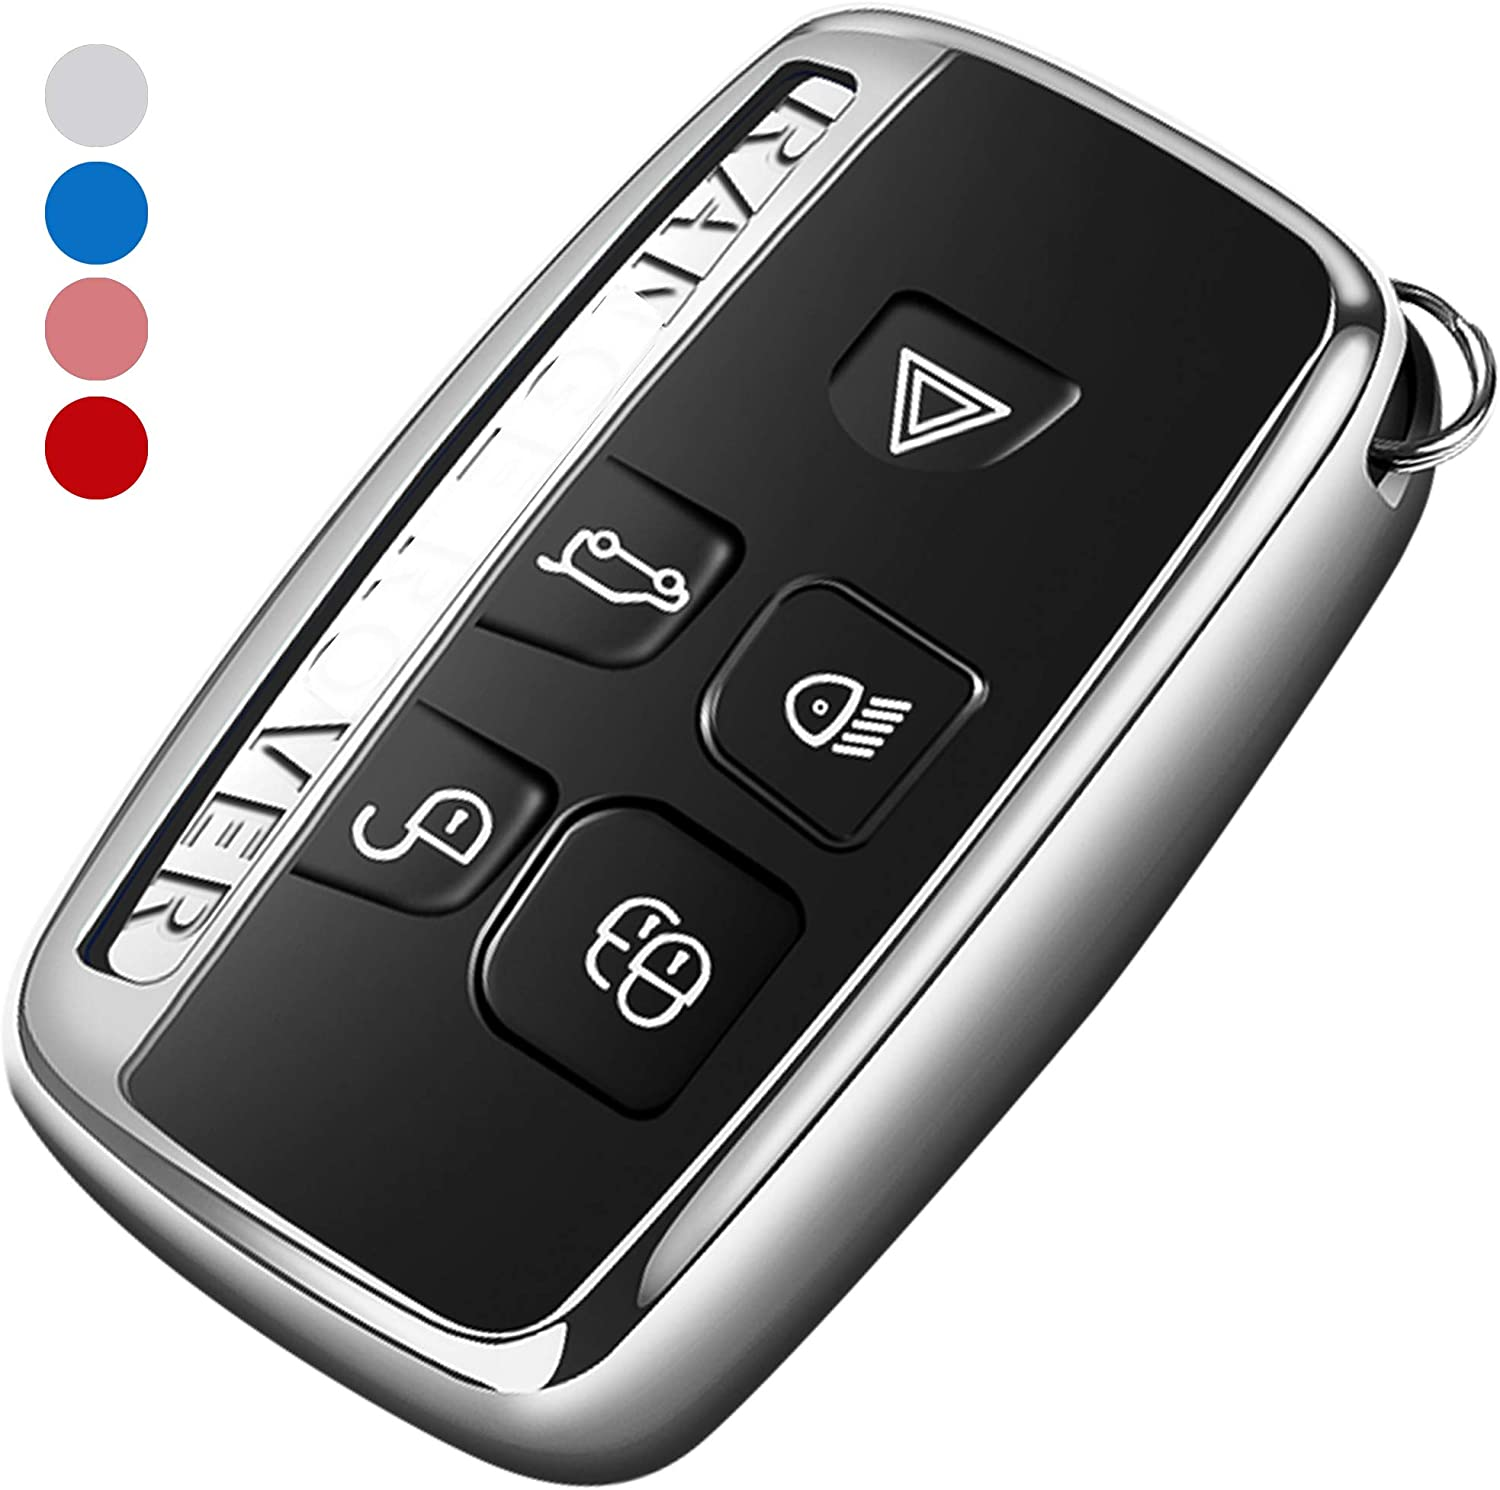 Uxinuo Compatible with Range Rover Key Fob Cover Case Premium Soft TPU Key Fob Case for Defender Discovery Sport LR4 Range Rover Sport and Jaguar XF XJ XJL XE F-PACE Jaguar 5-Buttons Red